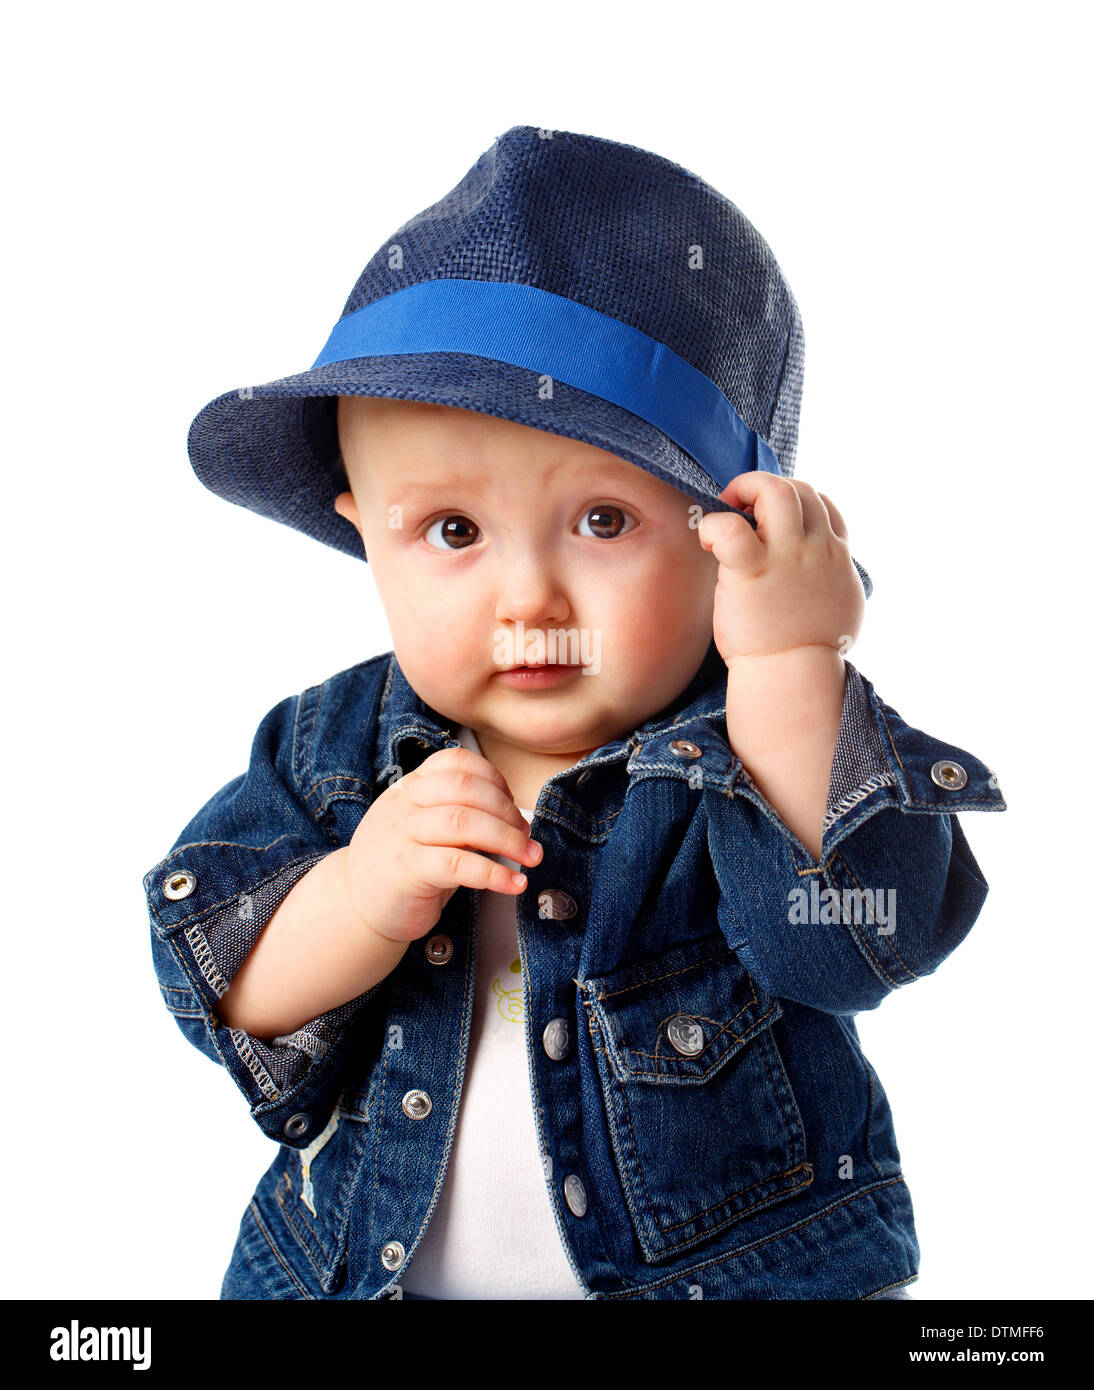 ea025ba3a89 Cute baby boy holding hat Stock Photo  66834074 - Alamy